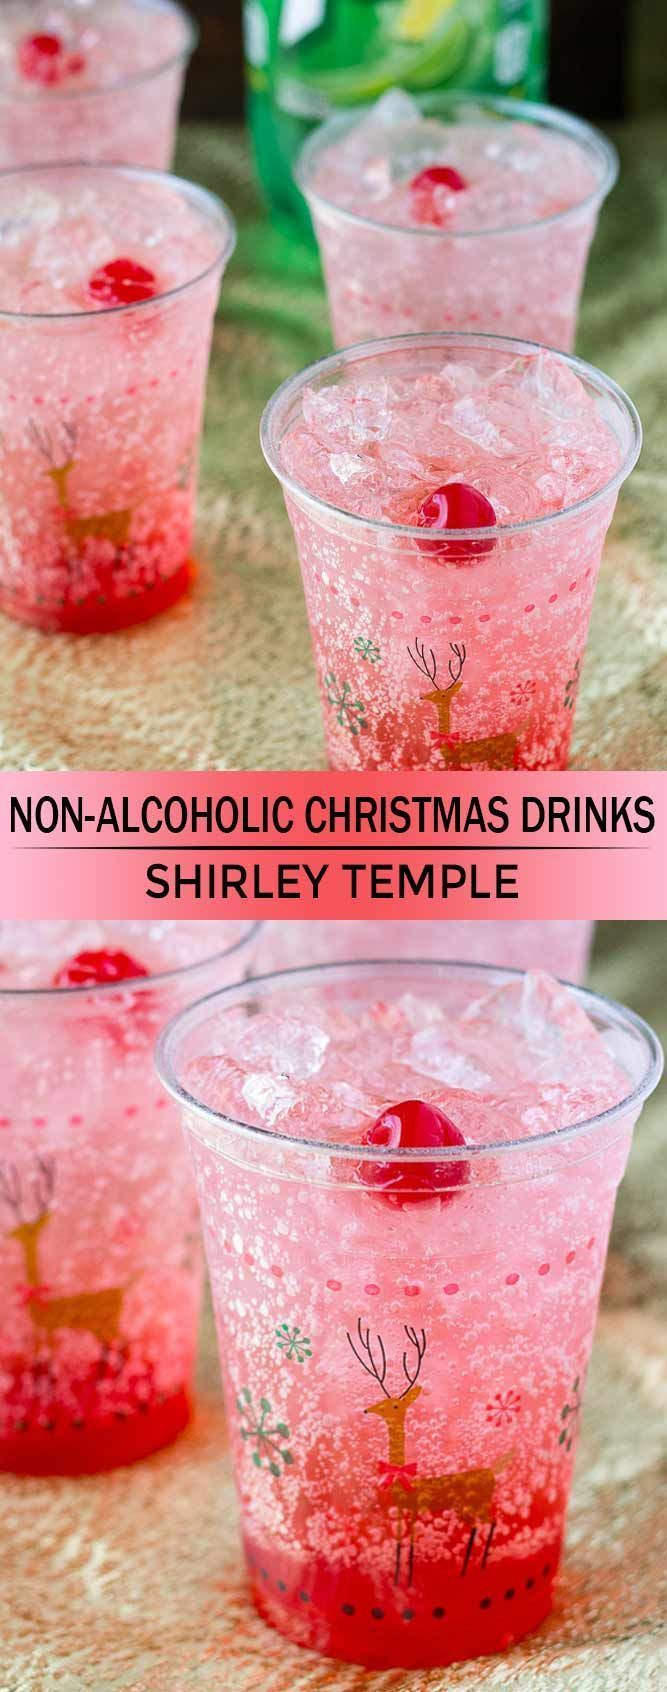 9 Non-Alcoholic Christmas Drinks That Are Perfect for the Holidays - ##drinks #alcoholic #christmas #holidays #perfect #nonalcoholic